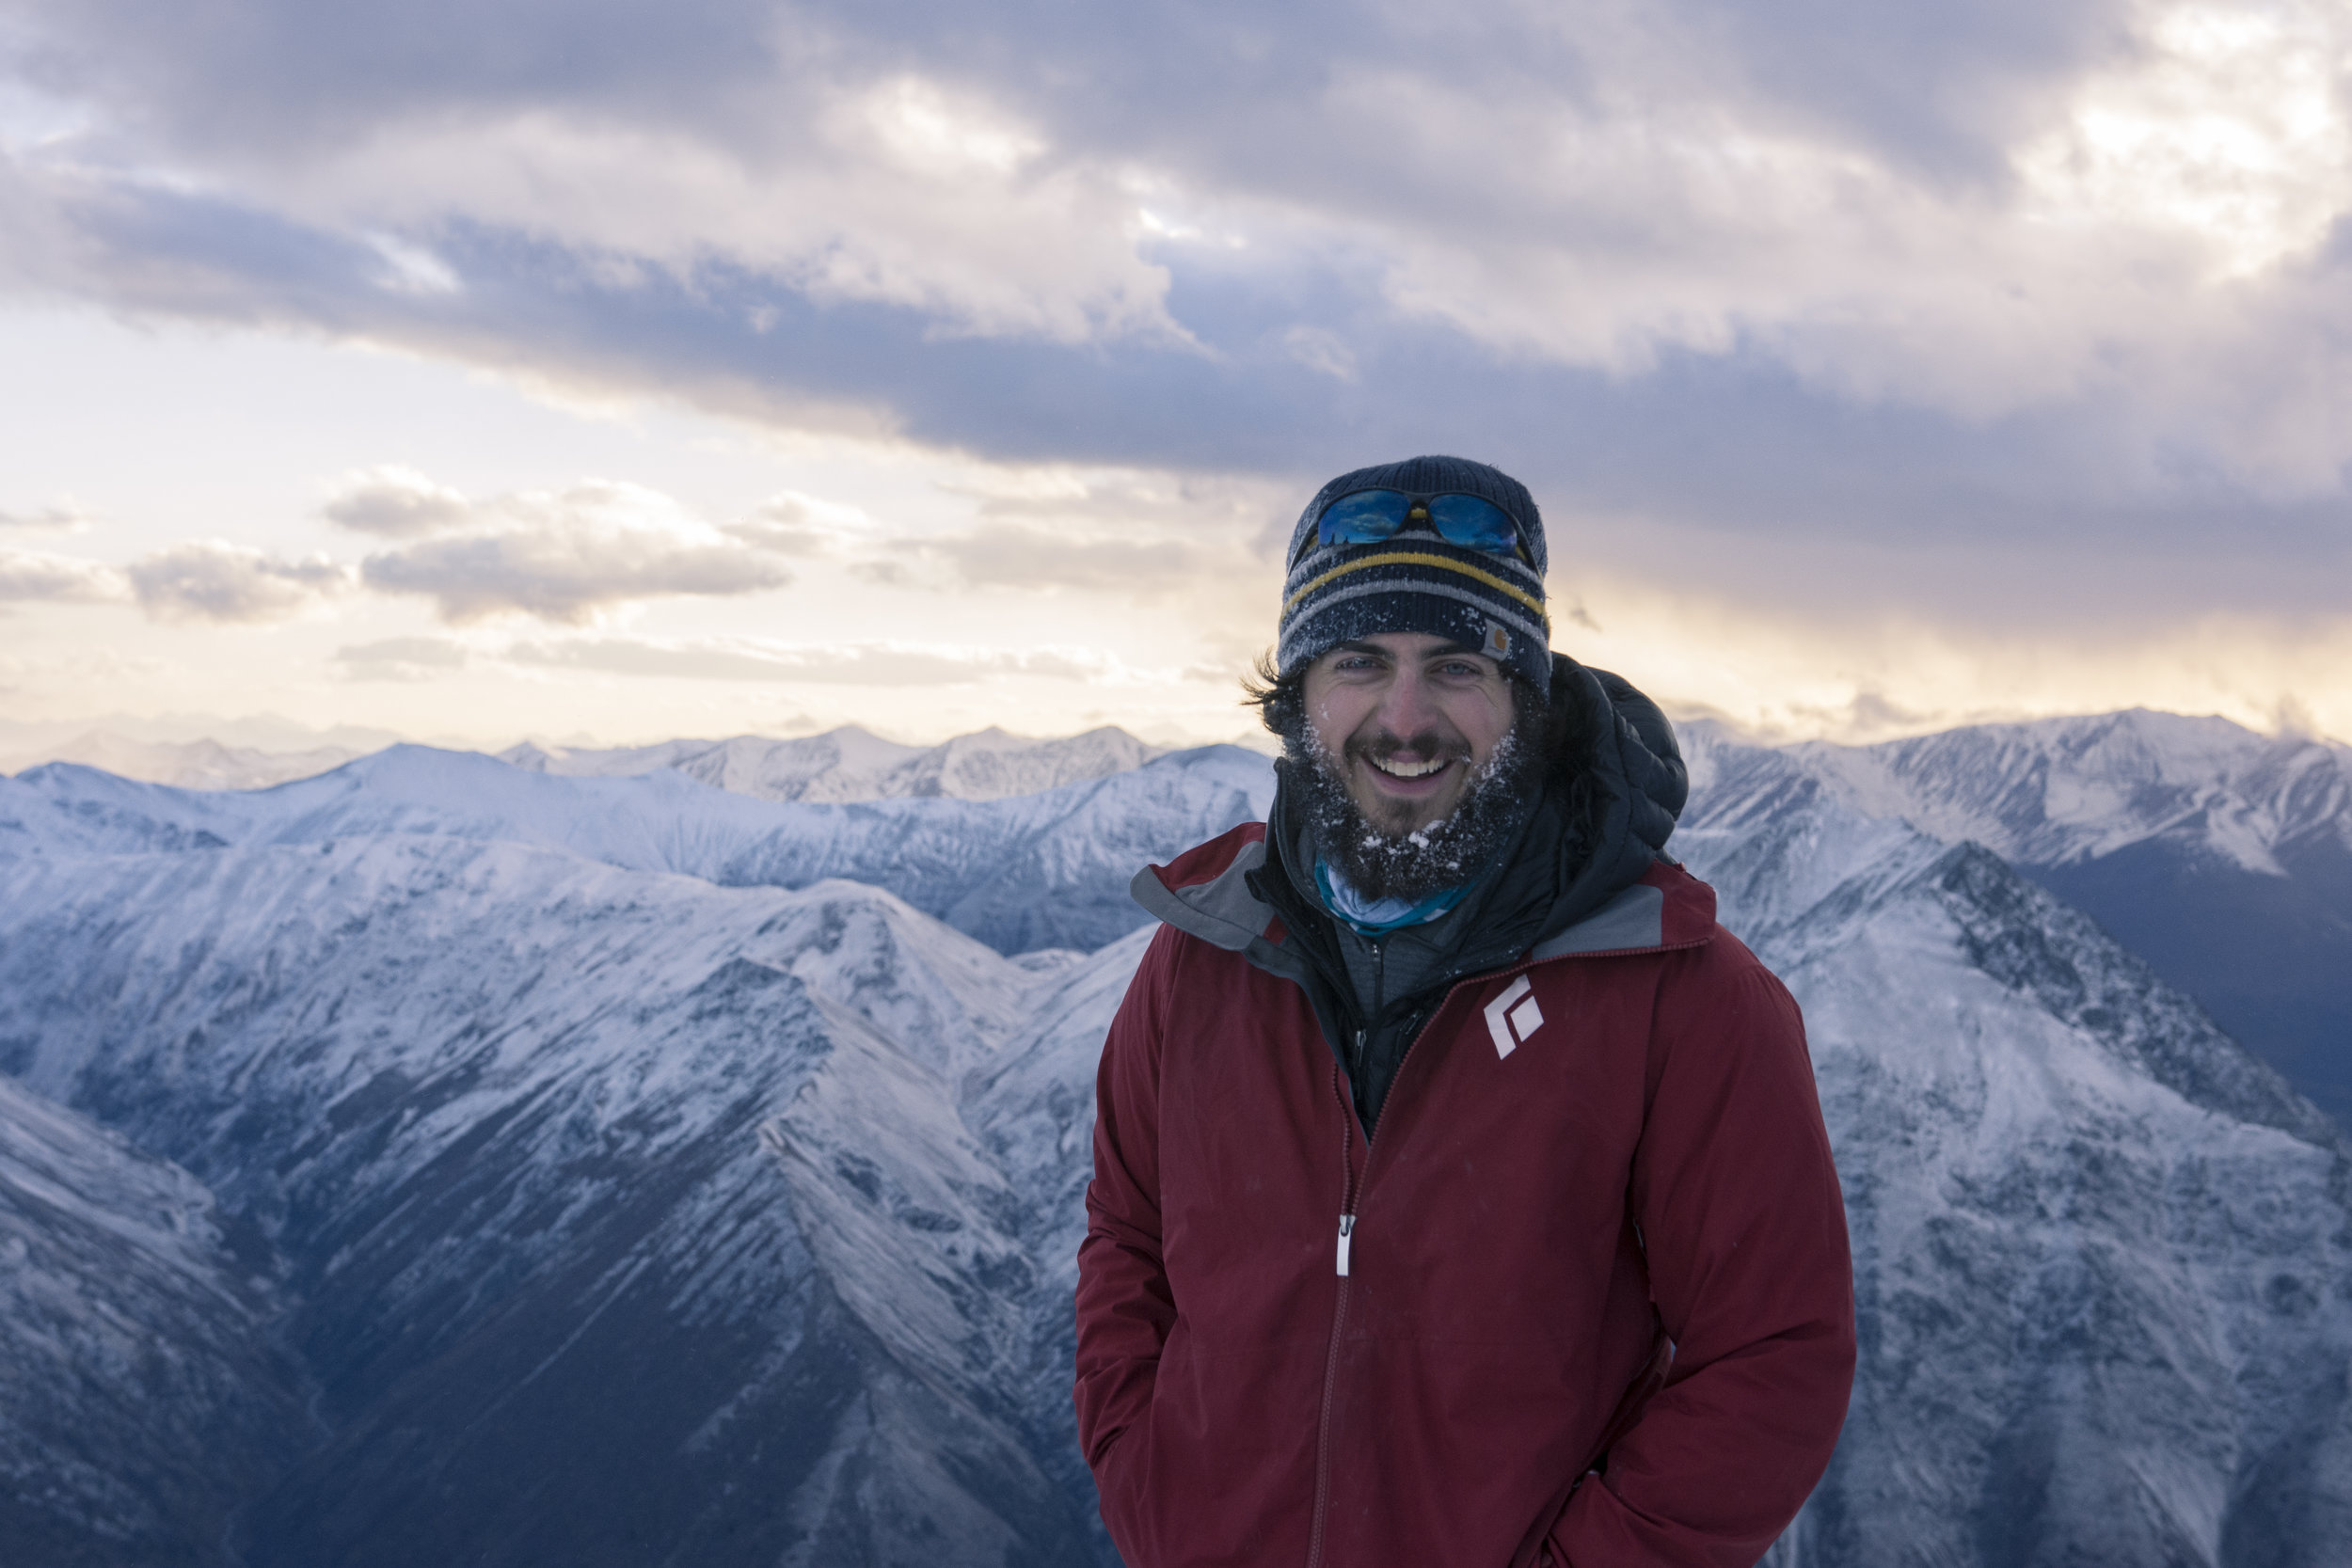 Self-Portrait, Kluane National Park